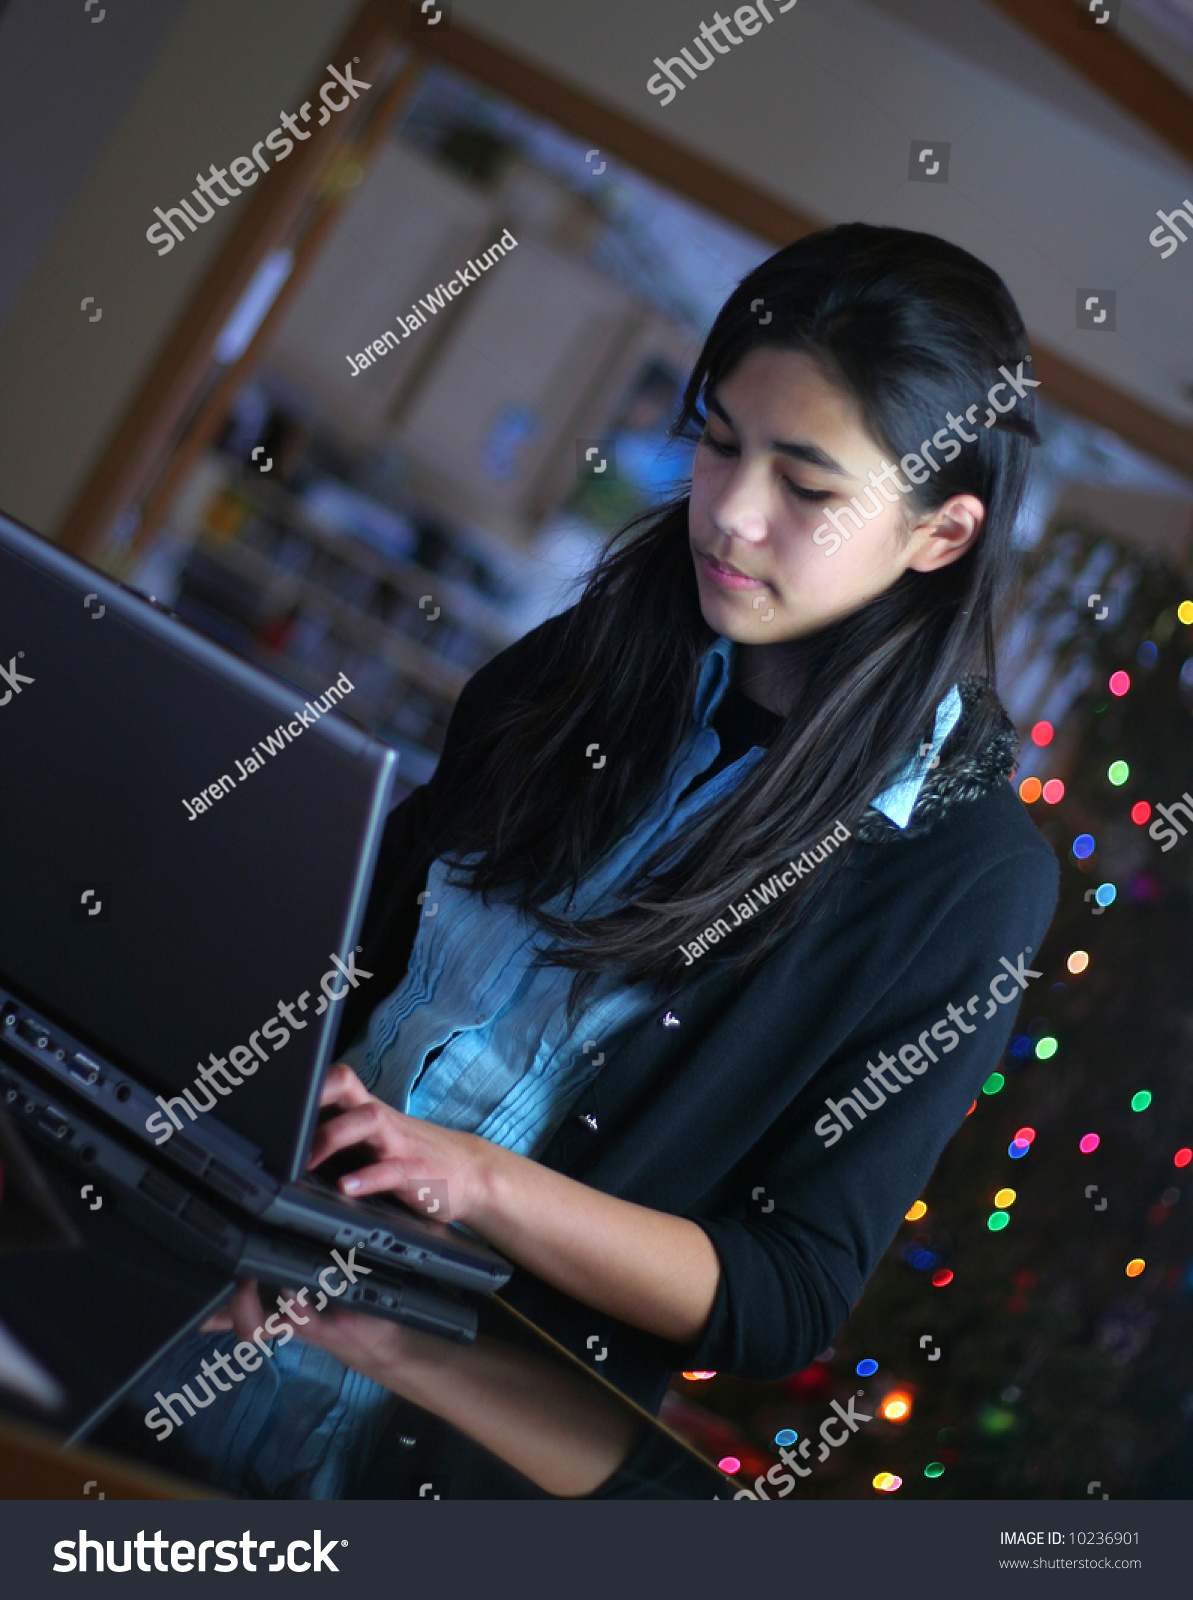 astralnymphets cute Filename:  stock-photo-teen-girl-working-on-laptop-christmas-tree-in-background-part-scandinavian-thai-descent-10236901.jpg